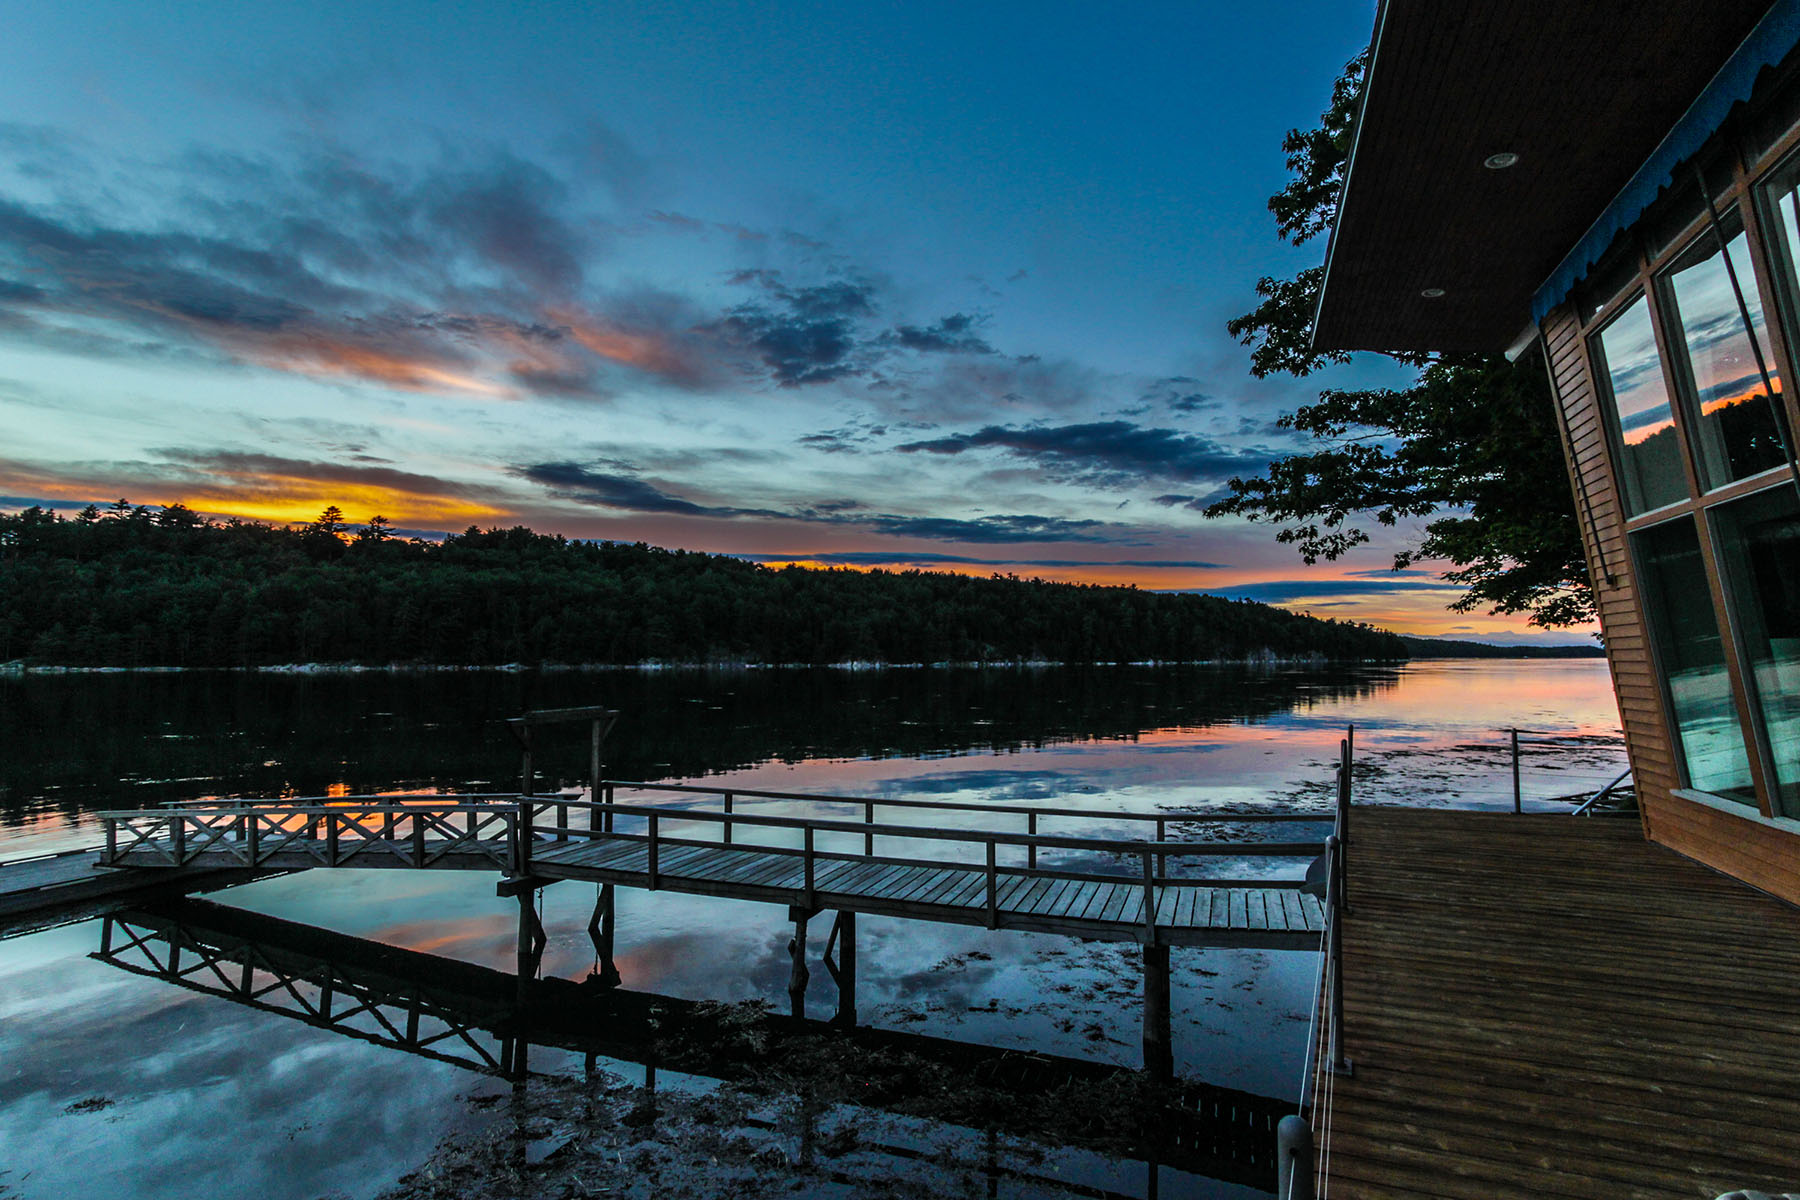 669 Cross Point Rd, Edgecomb, ME 04556